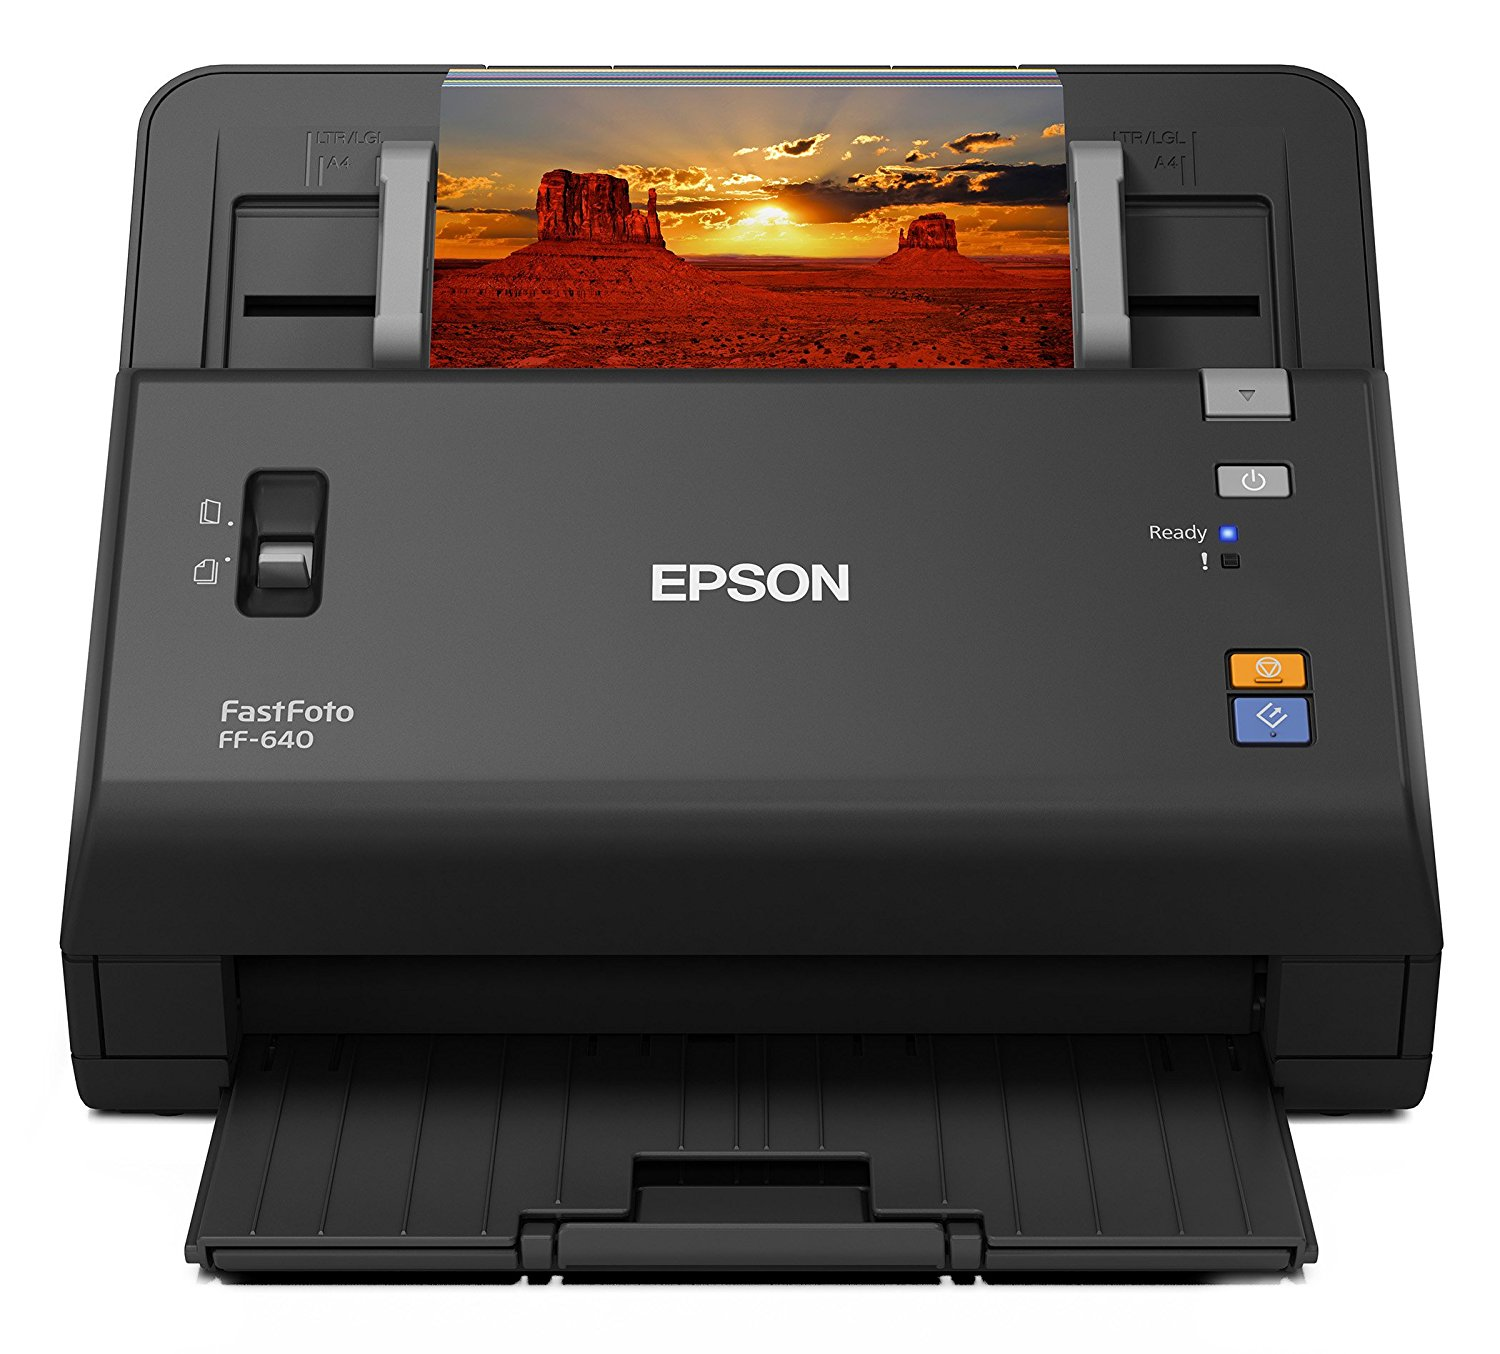 Epson FastFoto FF-640 High-Speed Photo Scanning